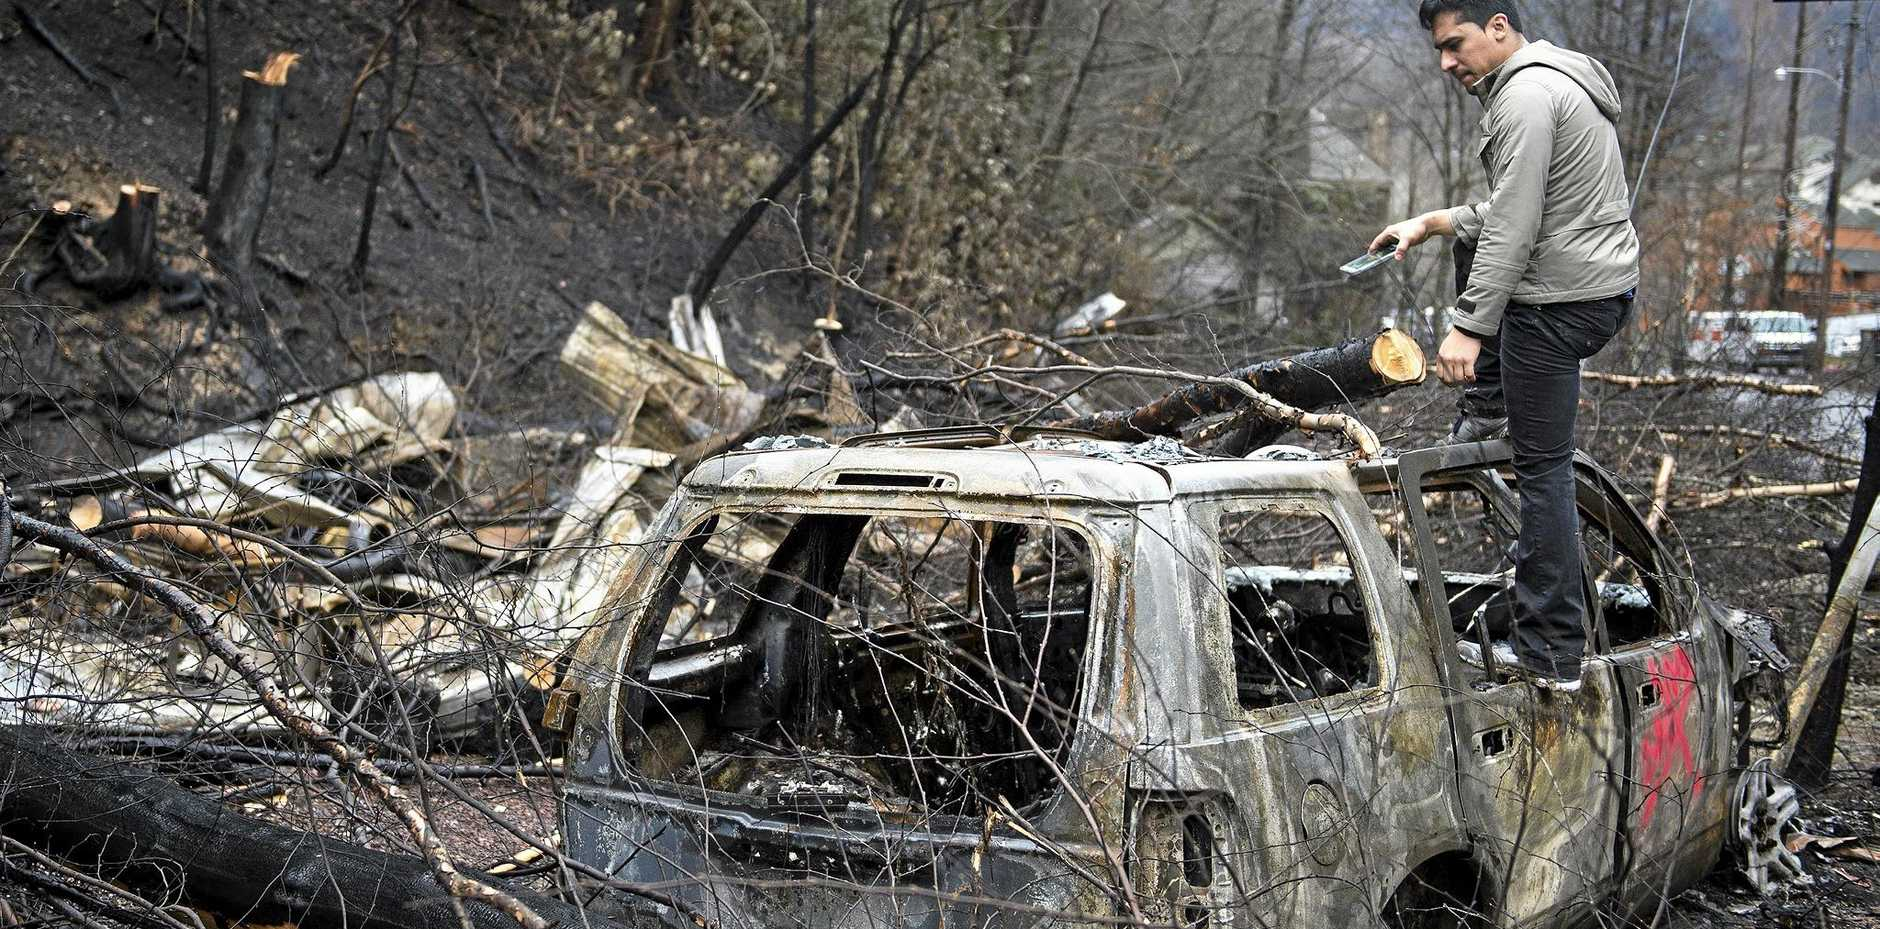 Allan Rivera looks over the remains of his home a week after hurricane-force winds whipped up fires that killed 14 people and damaged or destroyed 1700 buildings in the Great Smoky Mountains tourist region of the US.